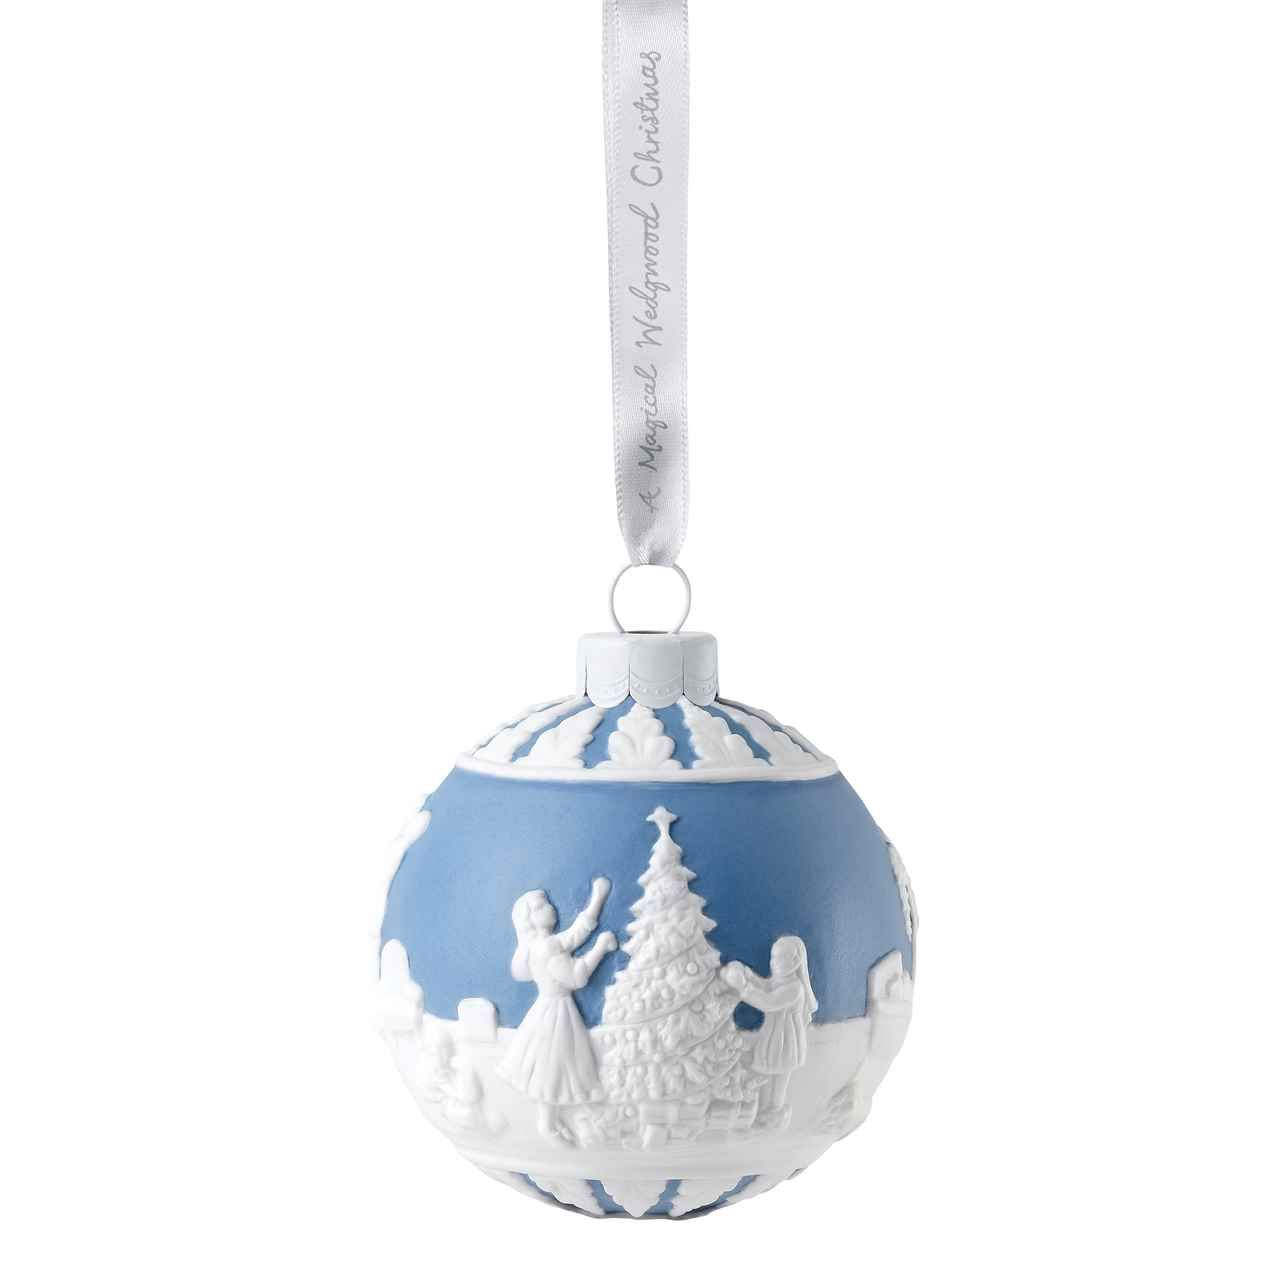 Christmas 2020 Dressing The Tree Bauble Ornament Wedgwood In 2020 Christmas Ornaments Christmas Tree Baubles Christmas Tree Decorations